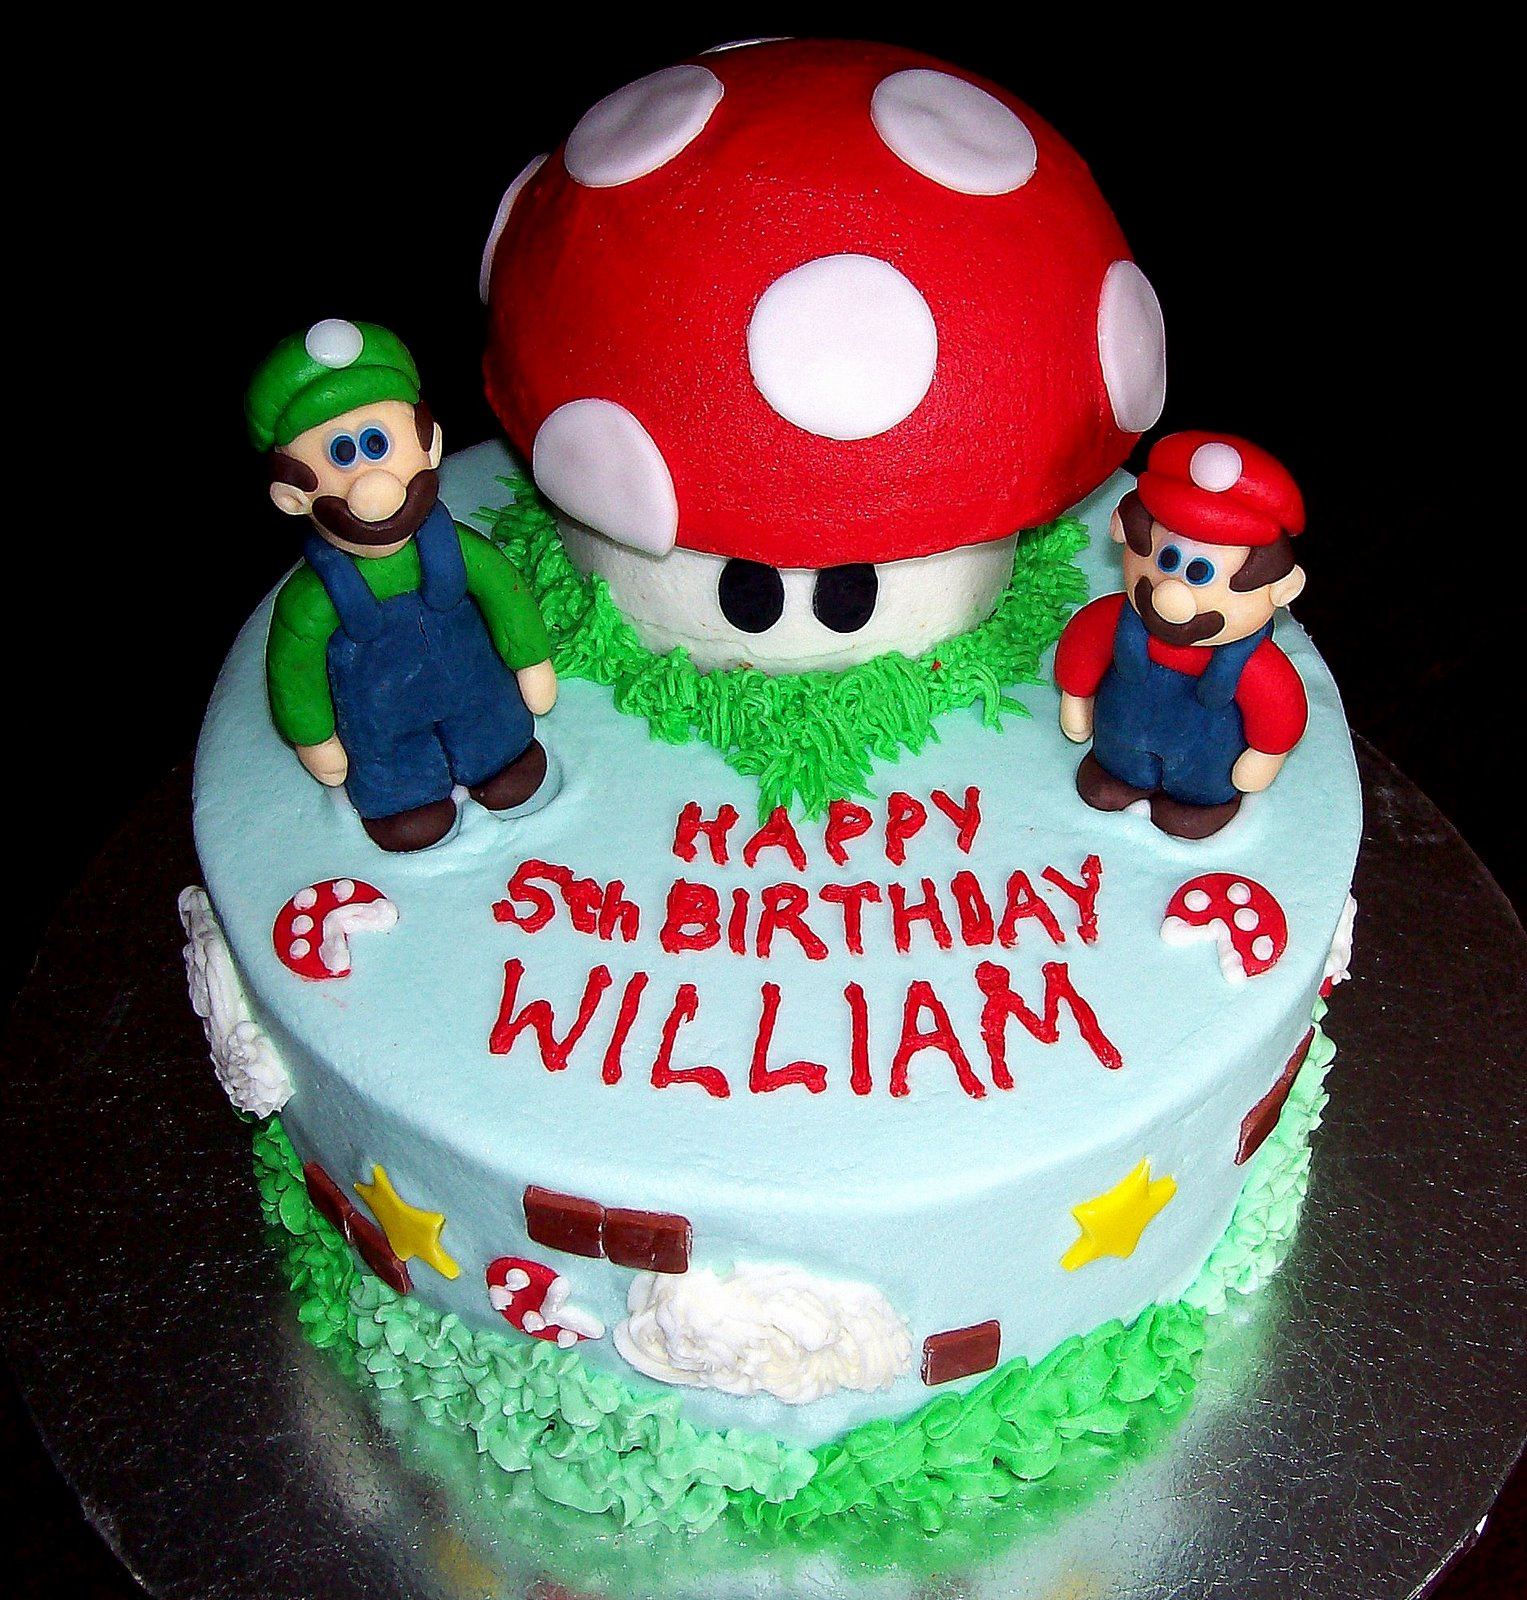 Cake Designs For Brother : Mario Bros Cake Ideas Buttercream 83025 Cakes Mario Brothers